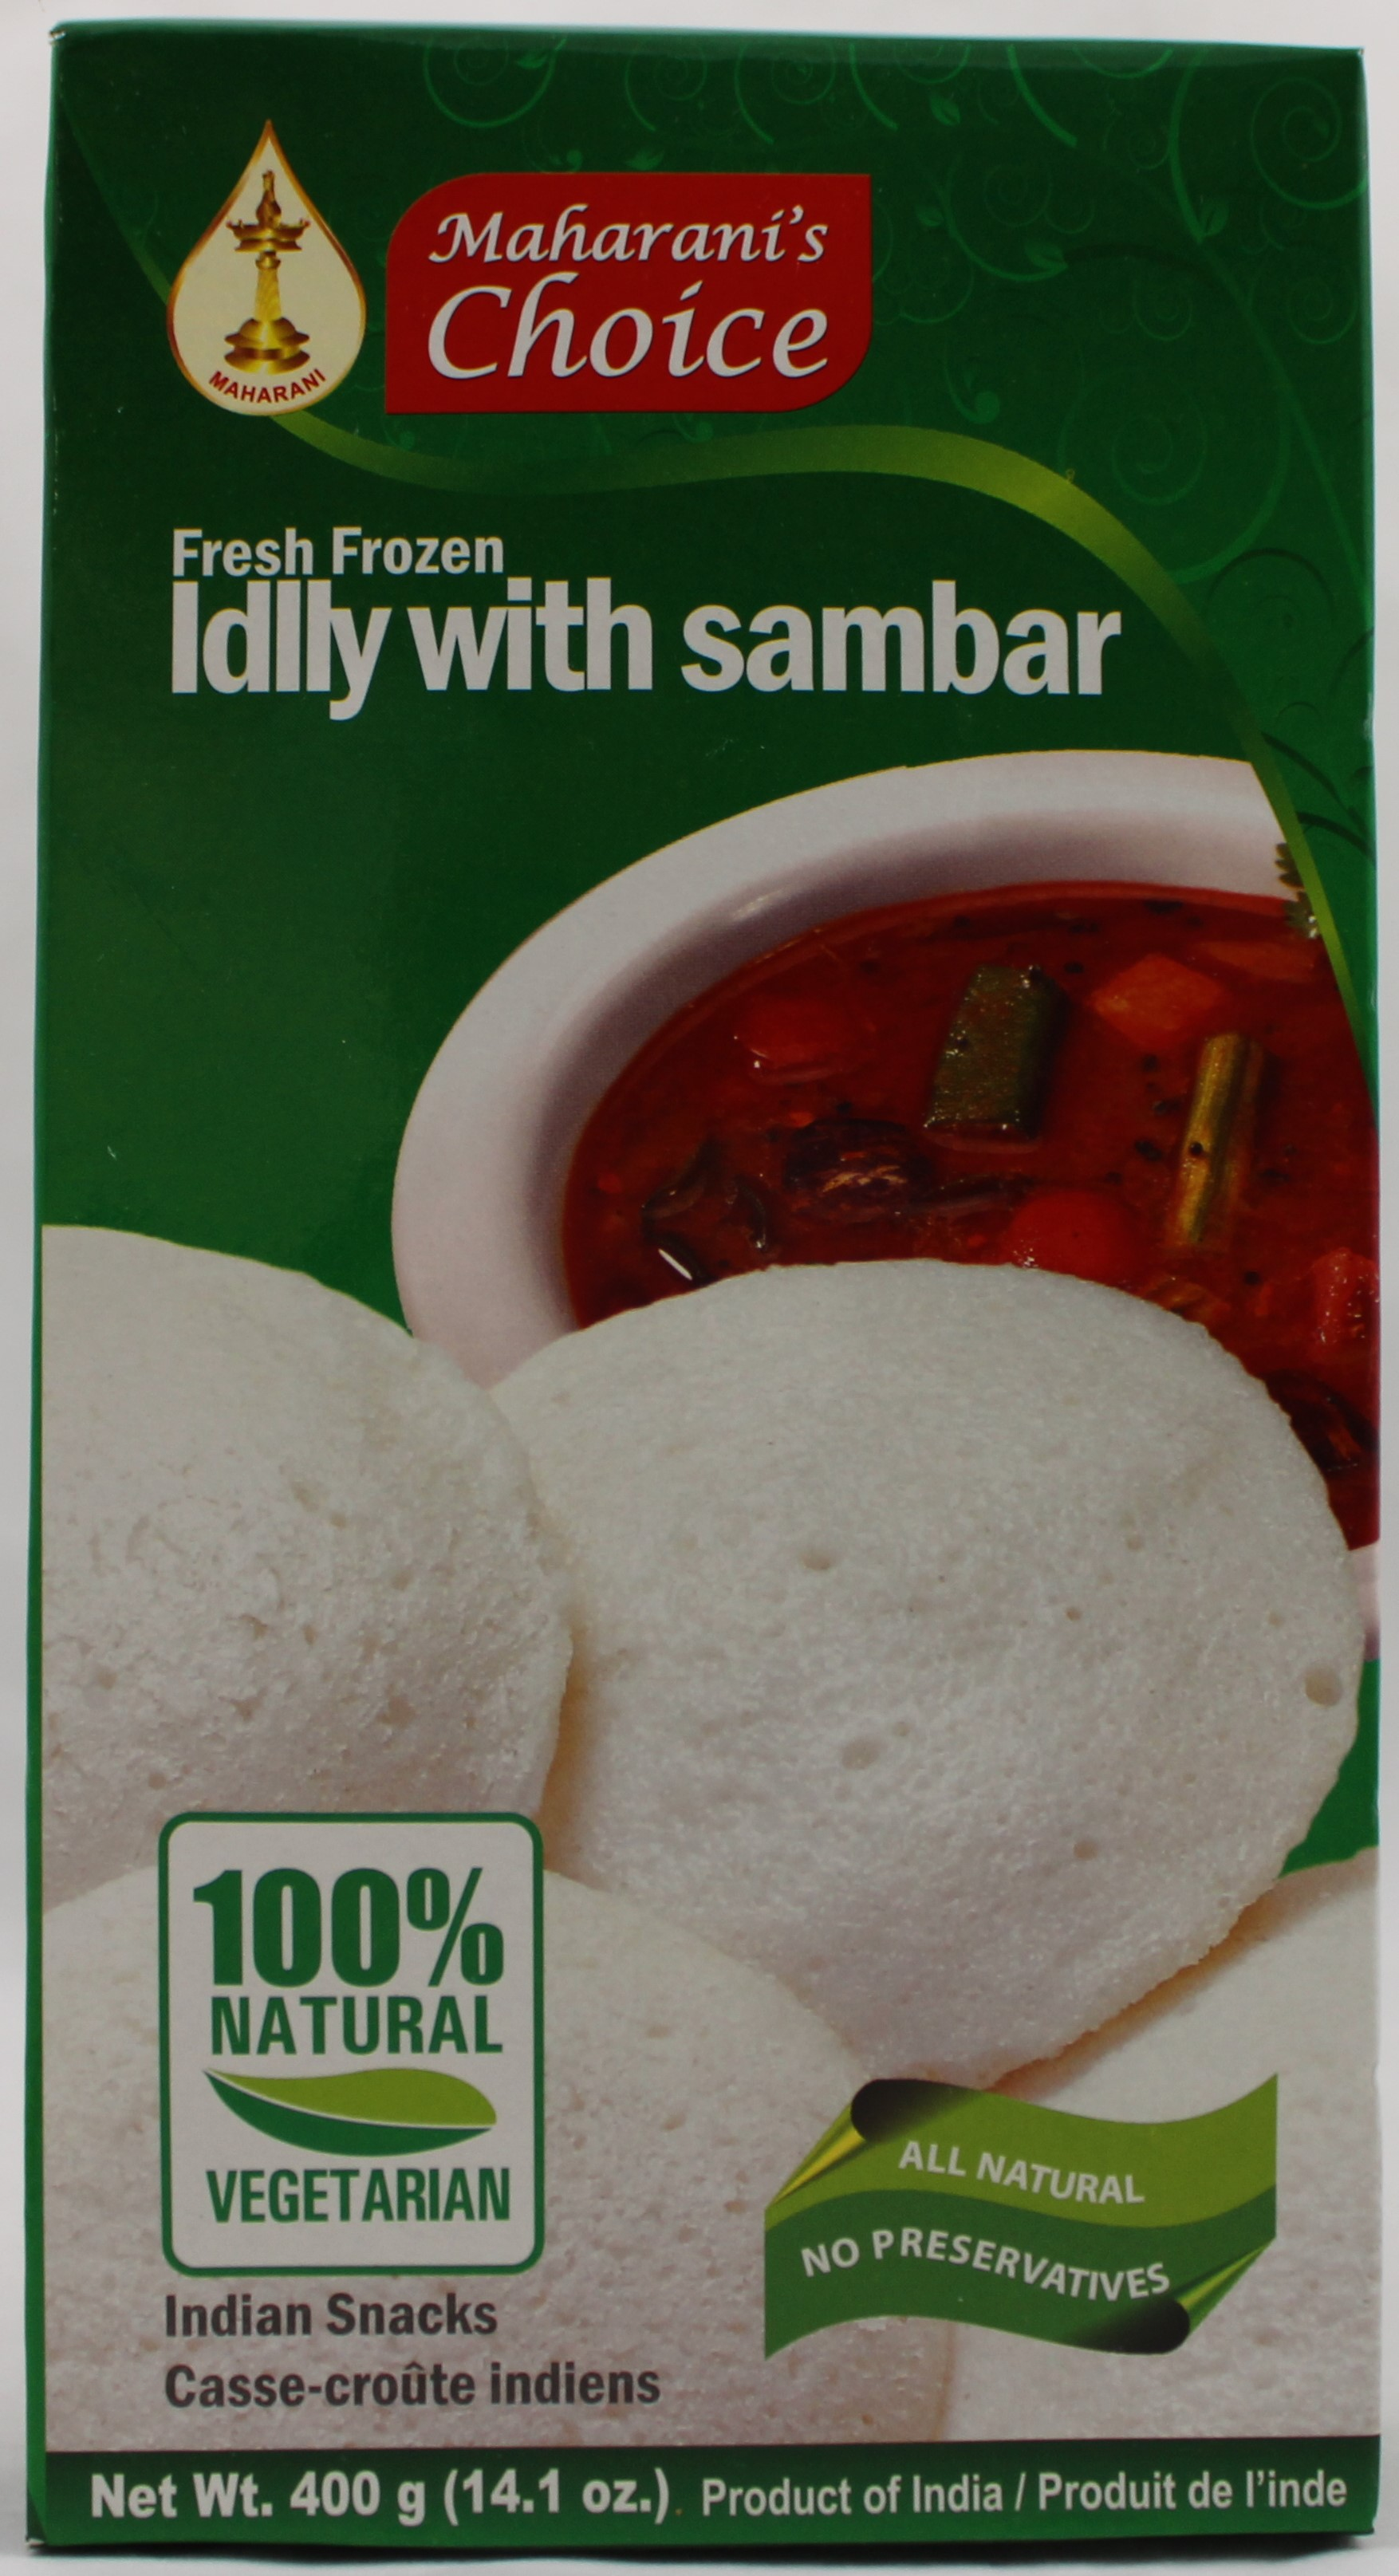 Maharani 10 Idlly With Sambar14.1oz